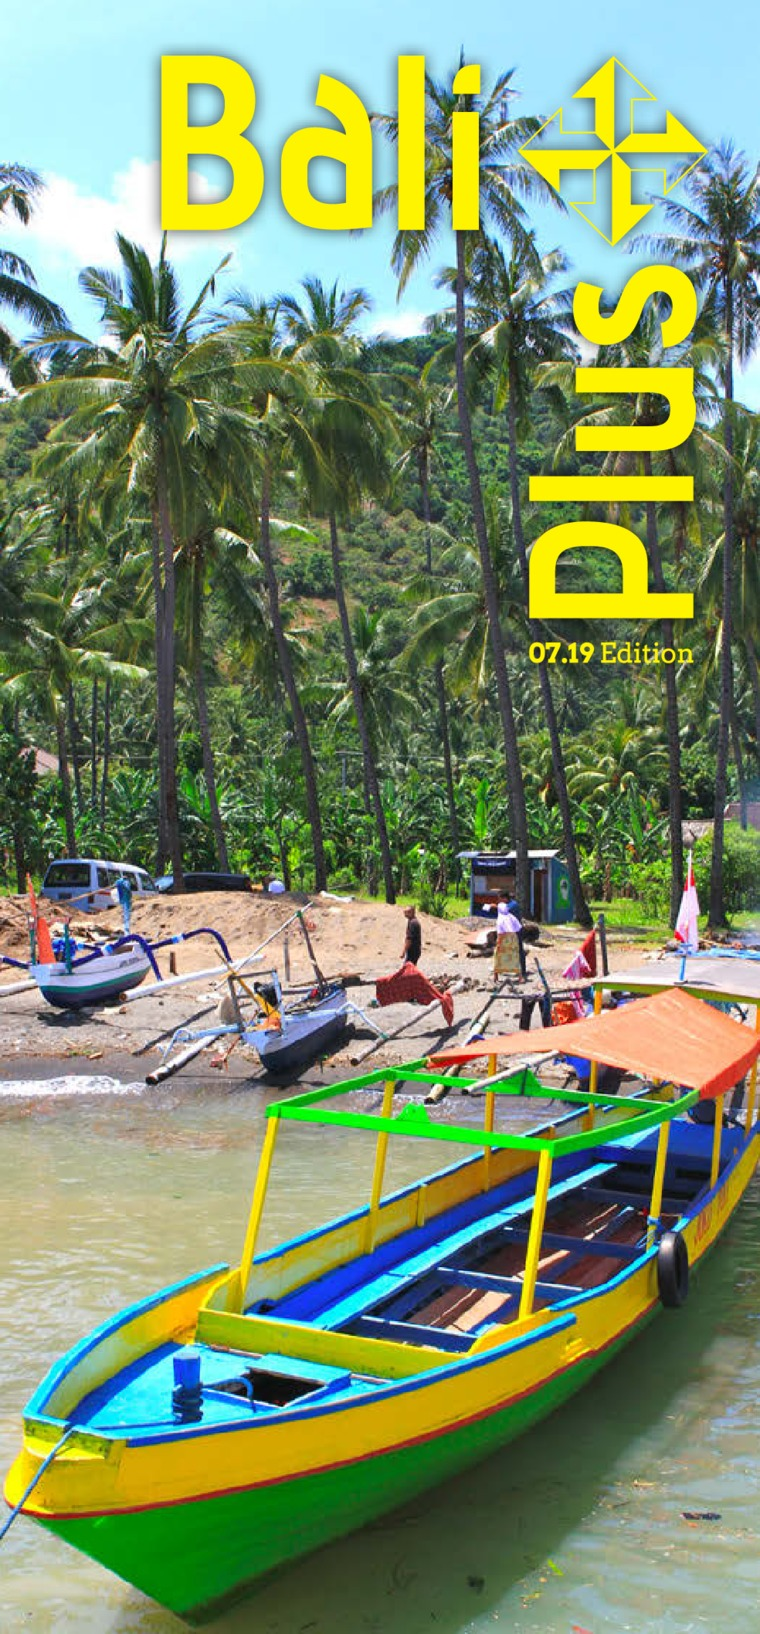 BALI PLUS Digital Magazine July 2019